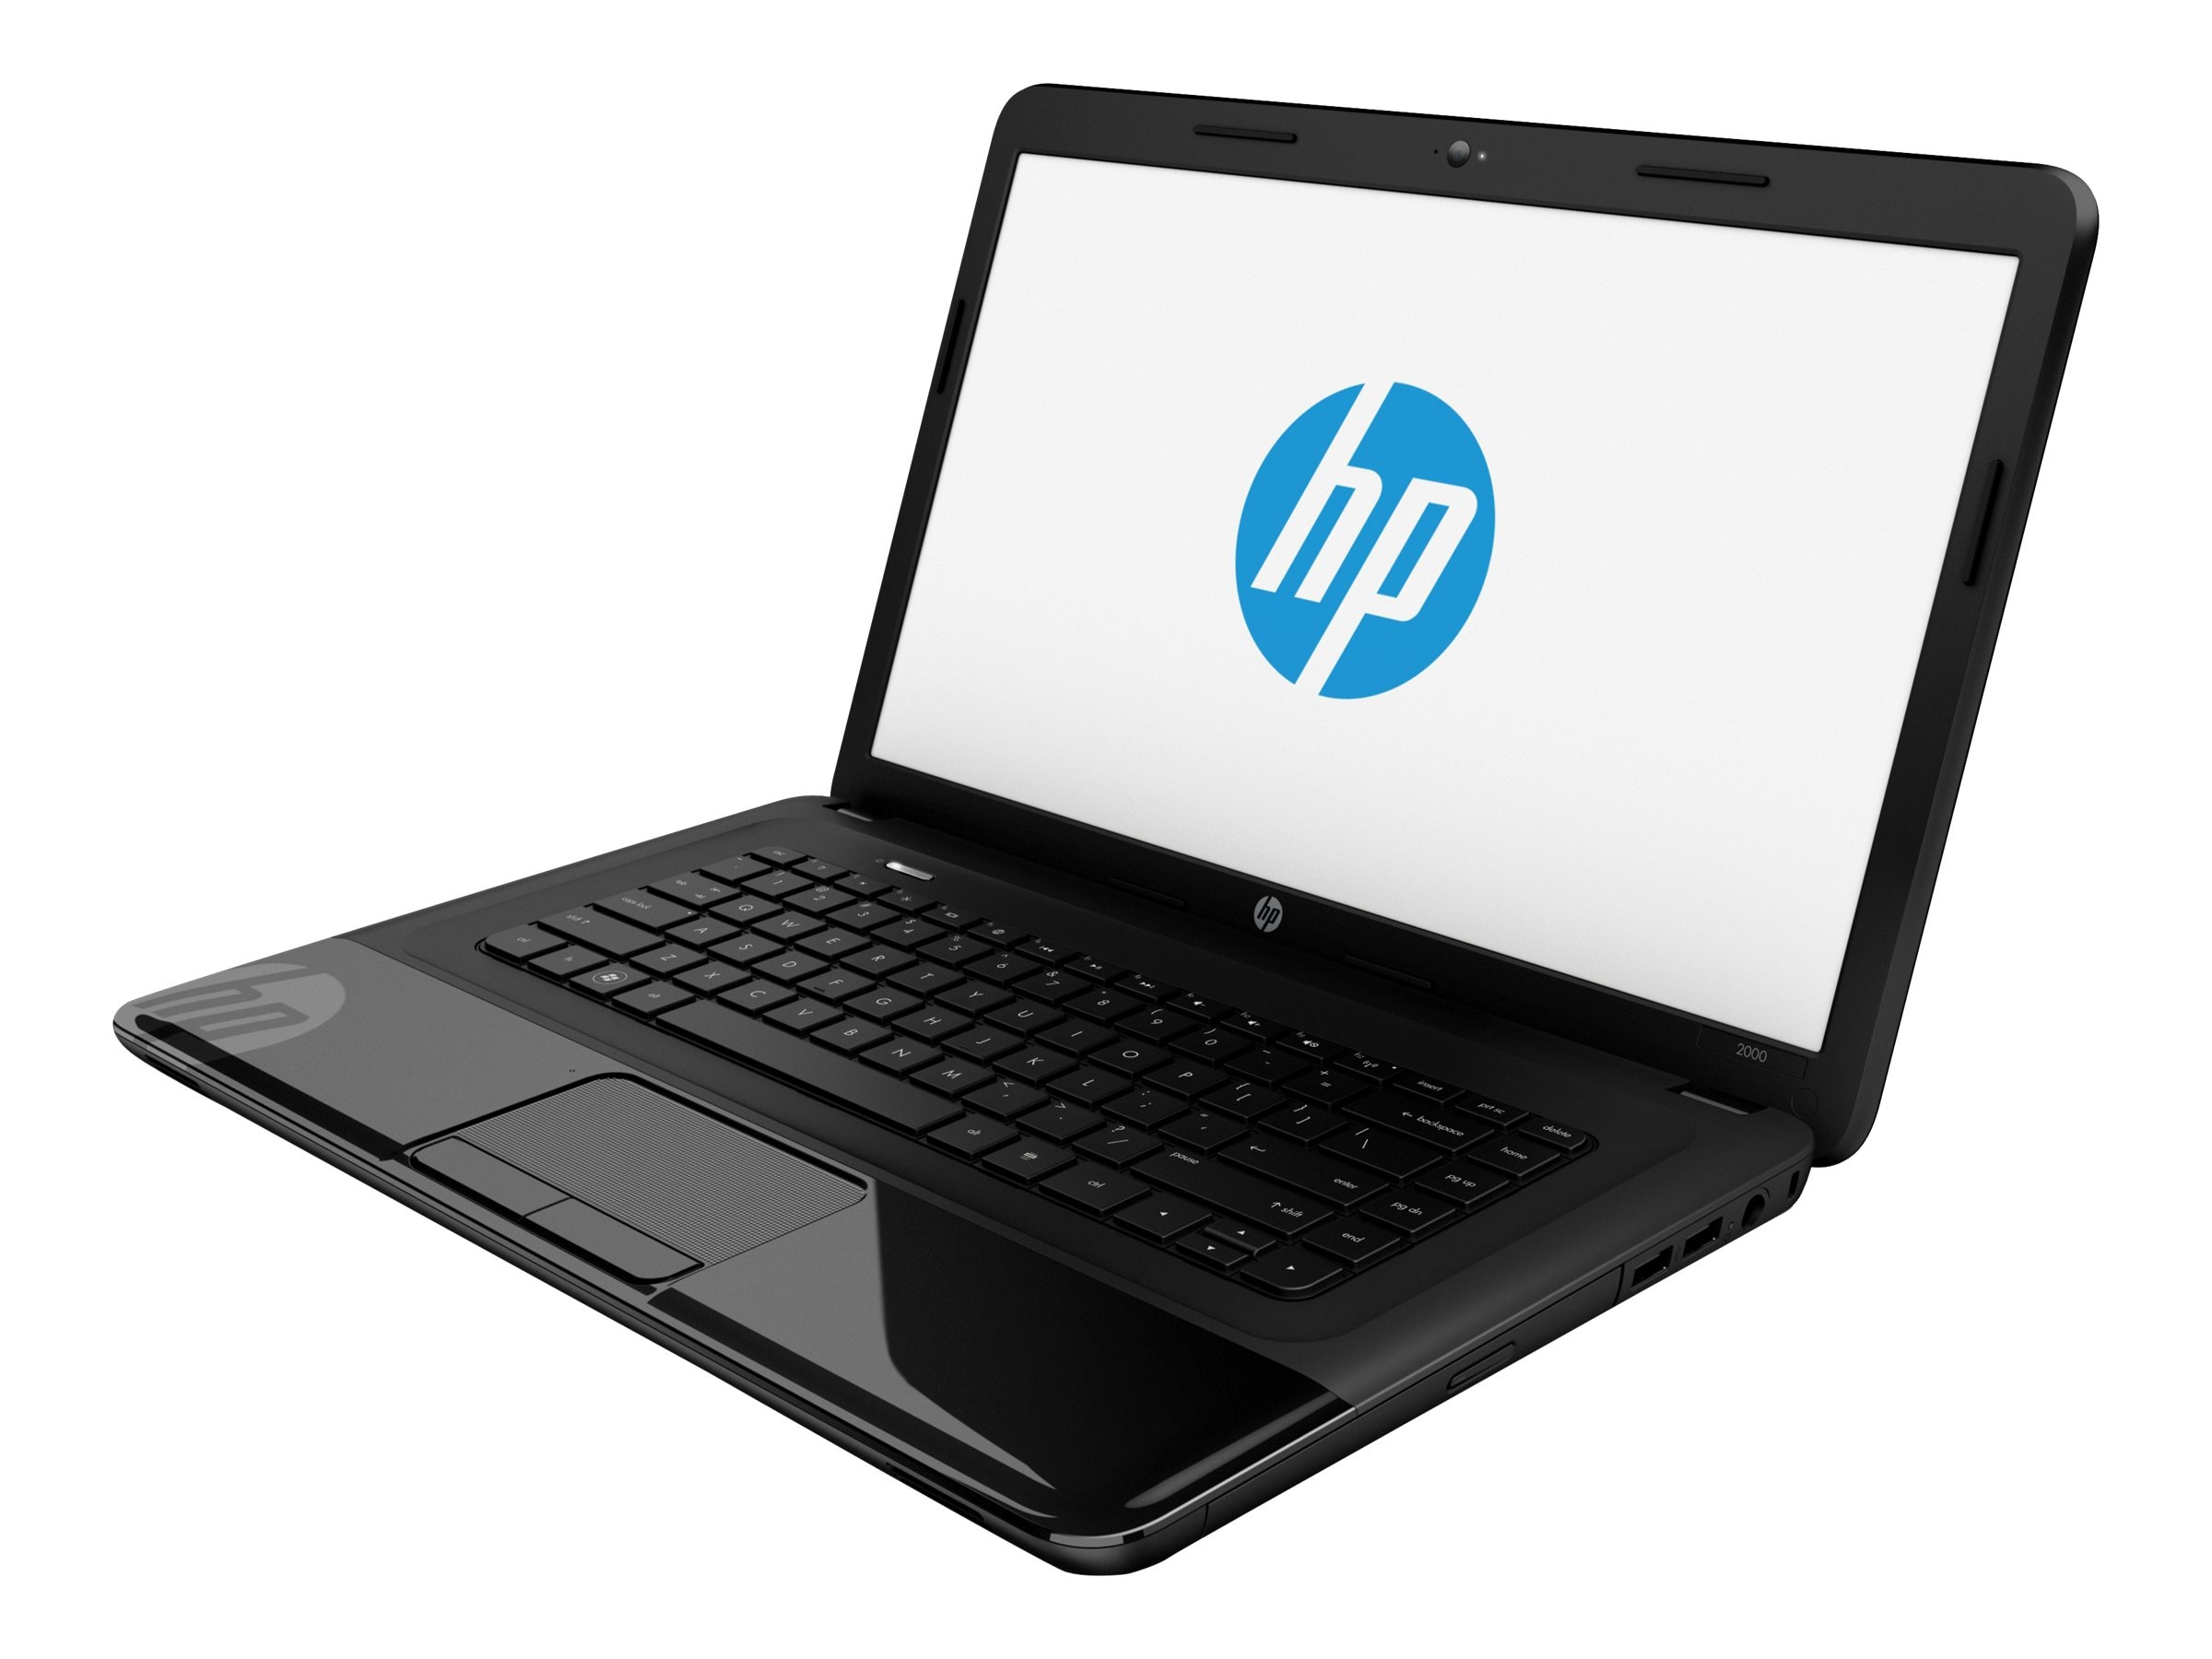 HP 2000-2B16nr Notebook PC, C2N26UA#ABA, 14771316, Notebooks